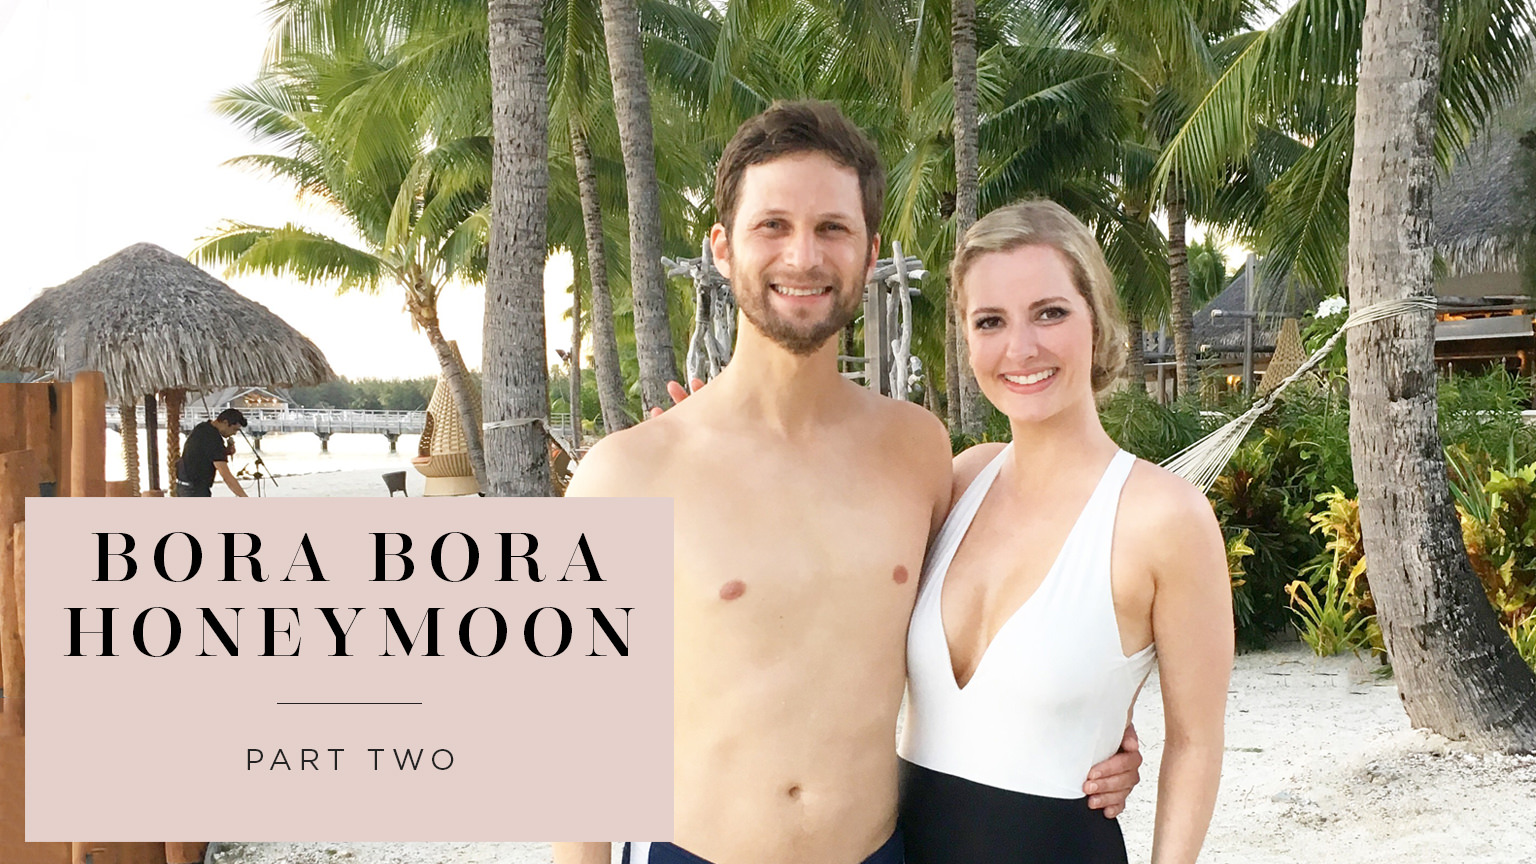 Our InterContinental Bora Bora Honeymoon: Part Two